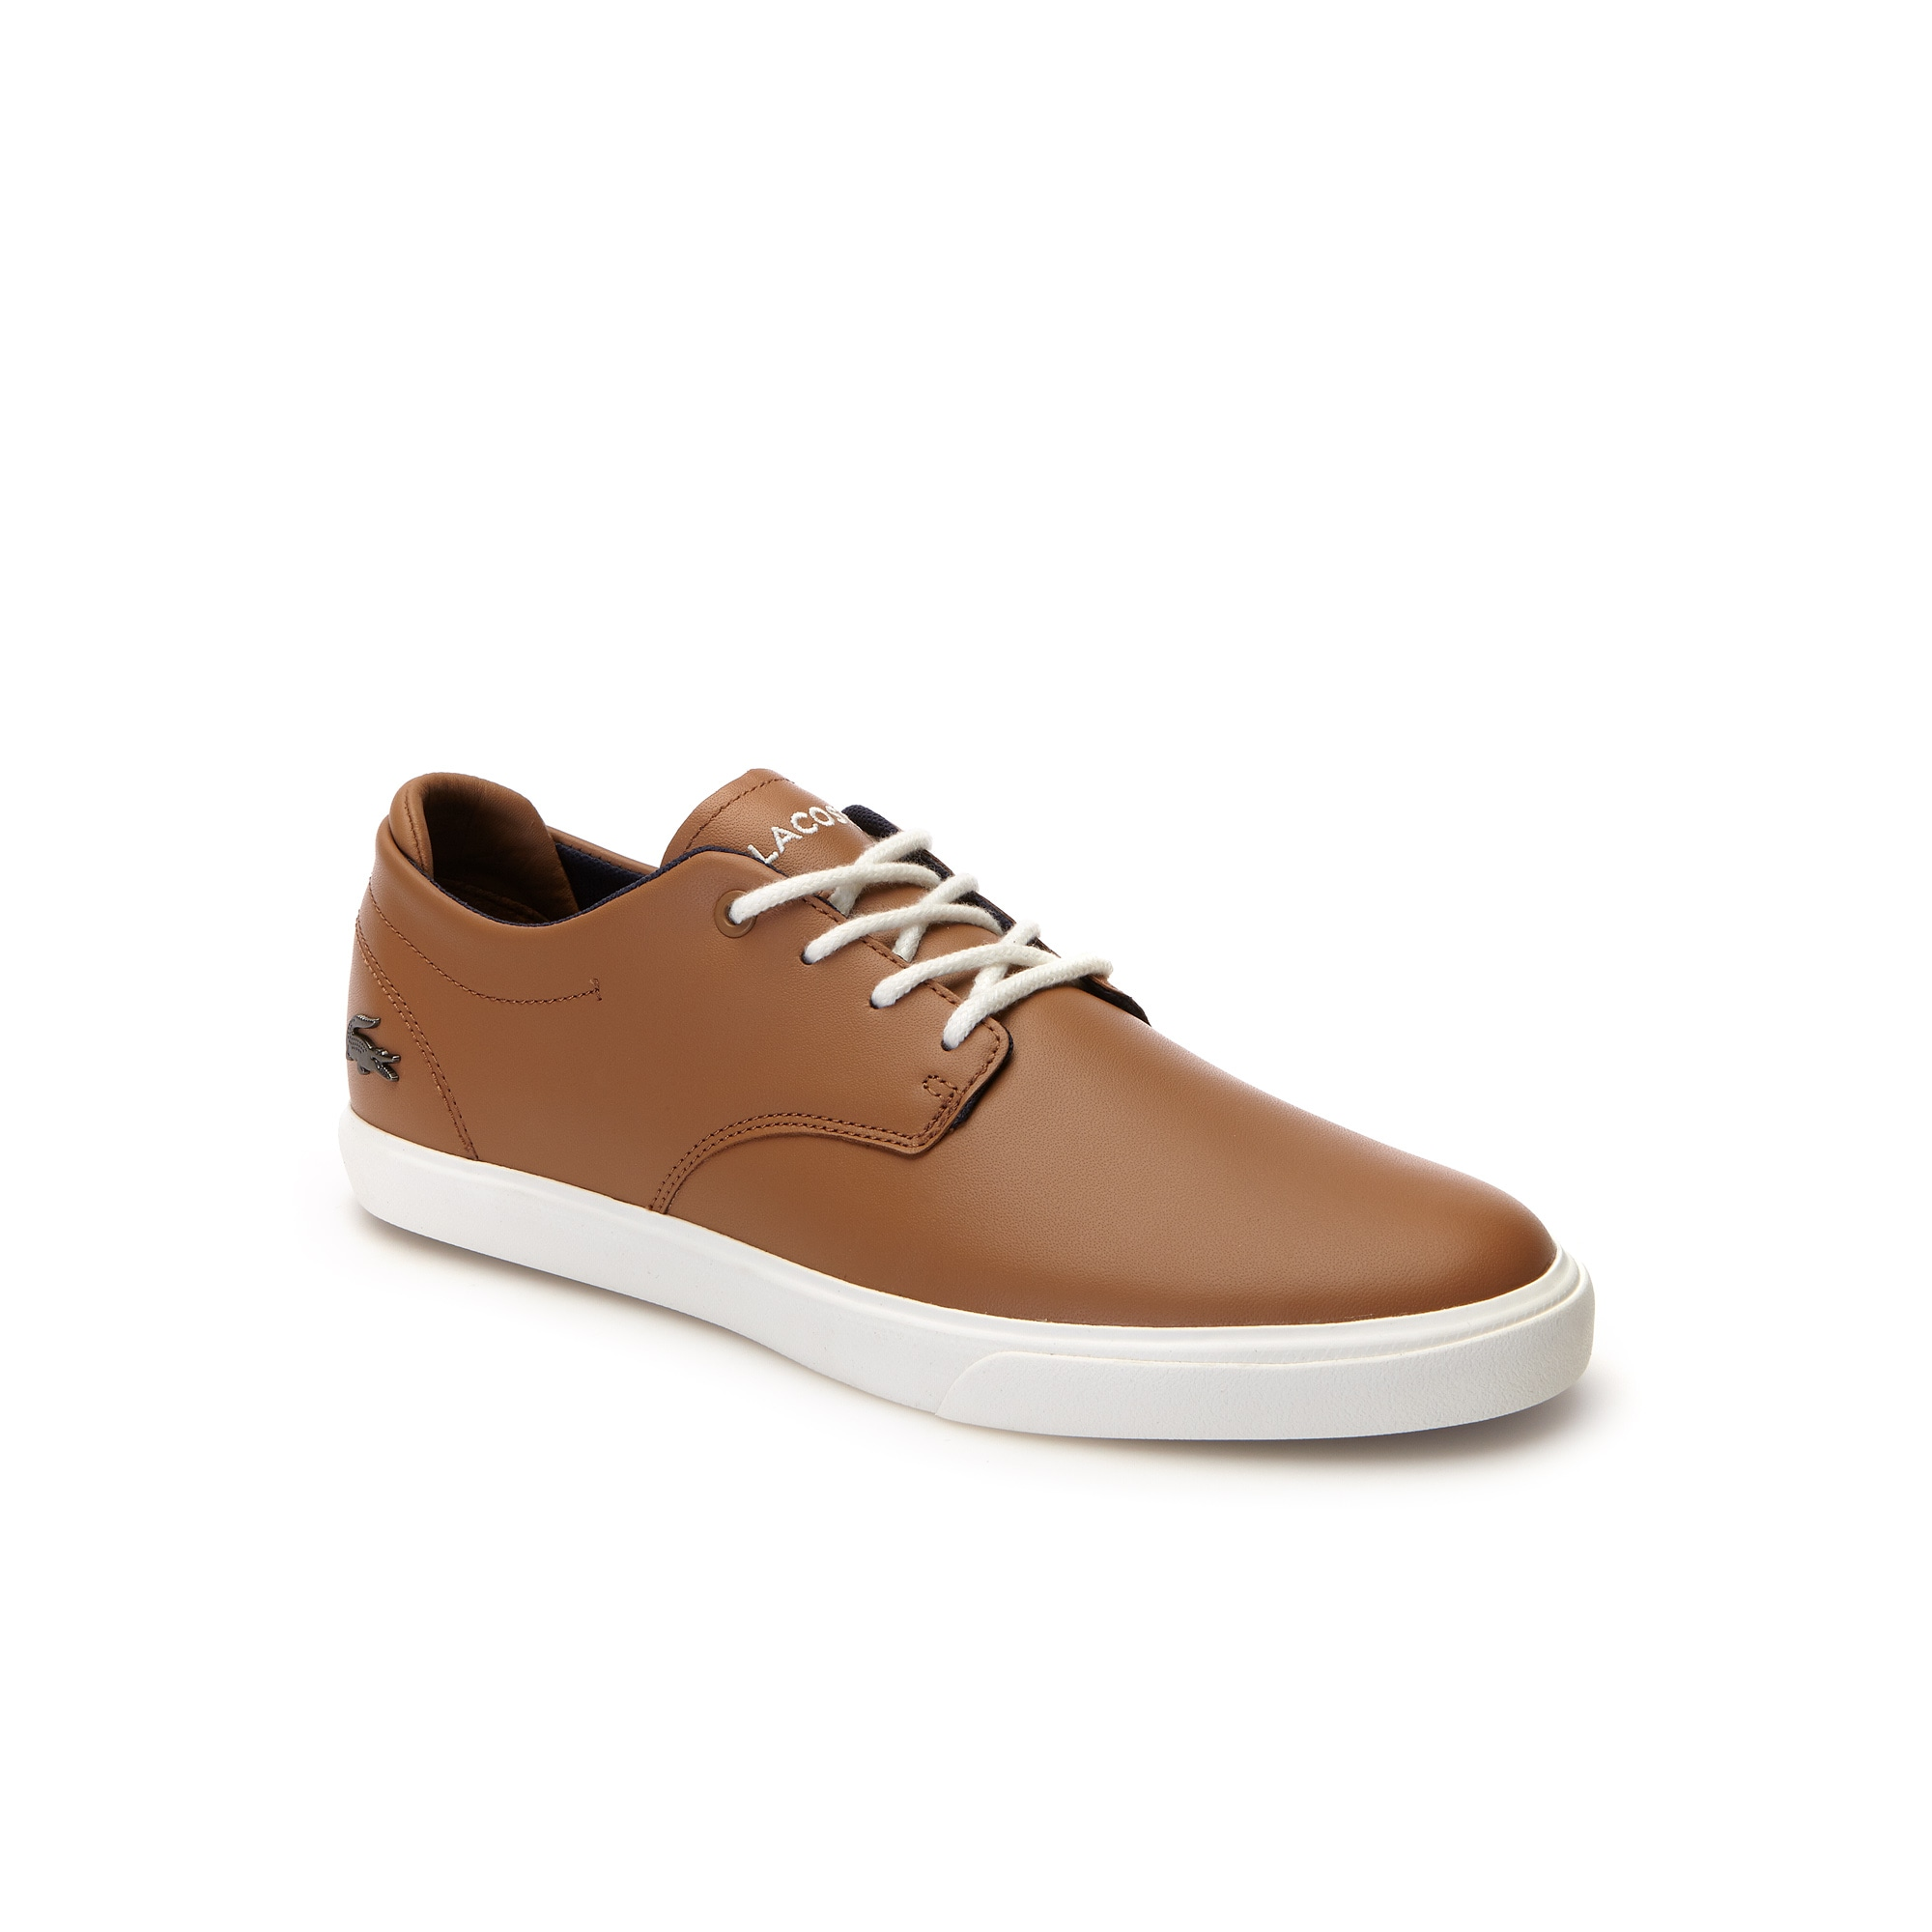 Men's Esparre Leather Sneakers